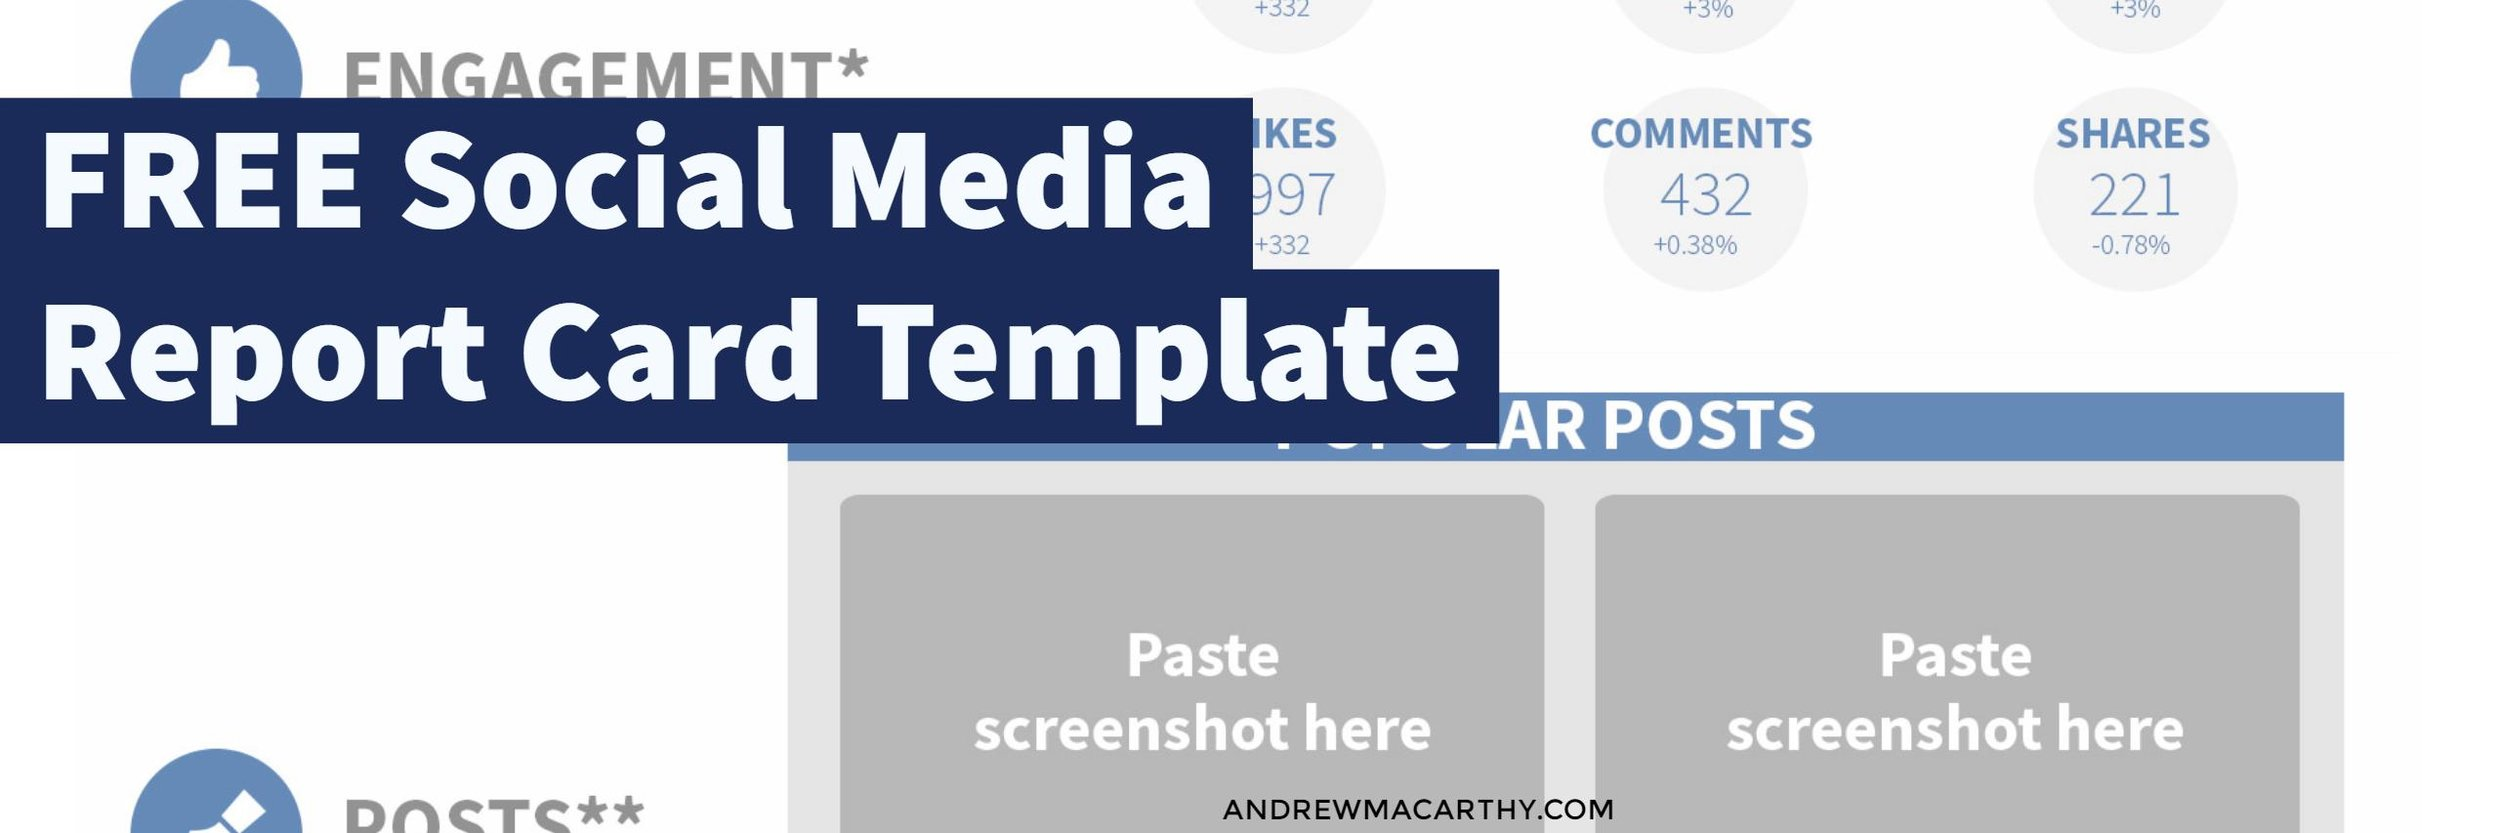 Use this FREE Social Media Report Card Template to WOW your Boss and Clients (Photoshop .psd)